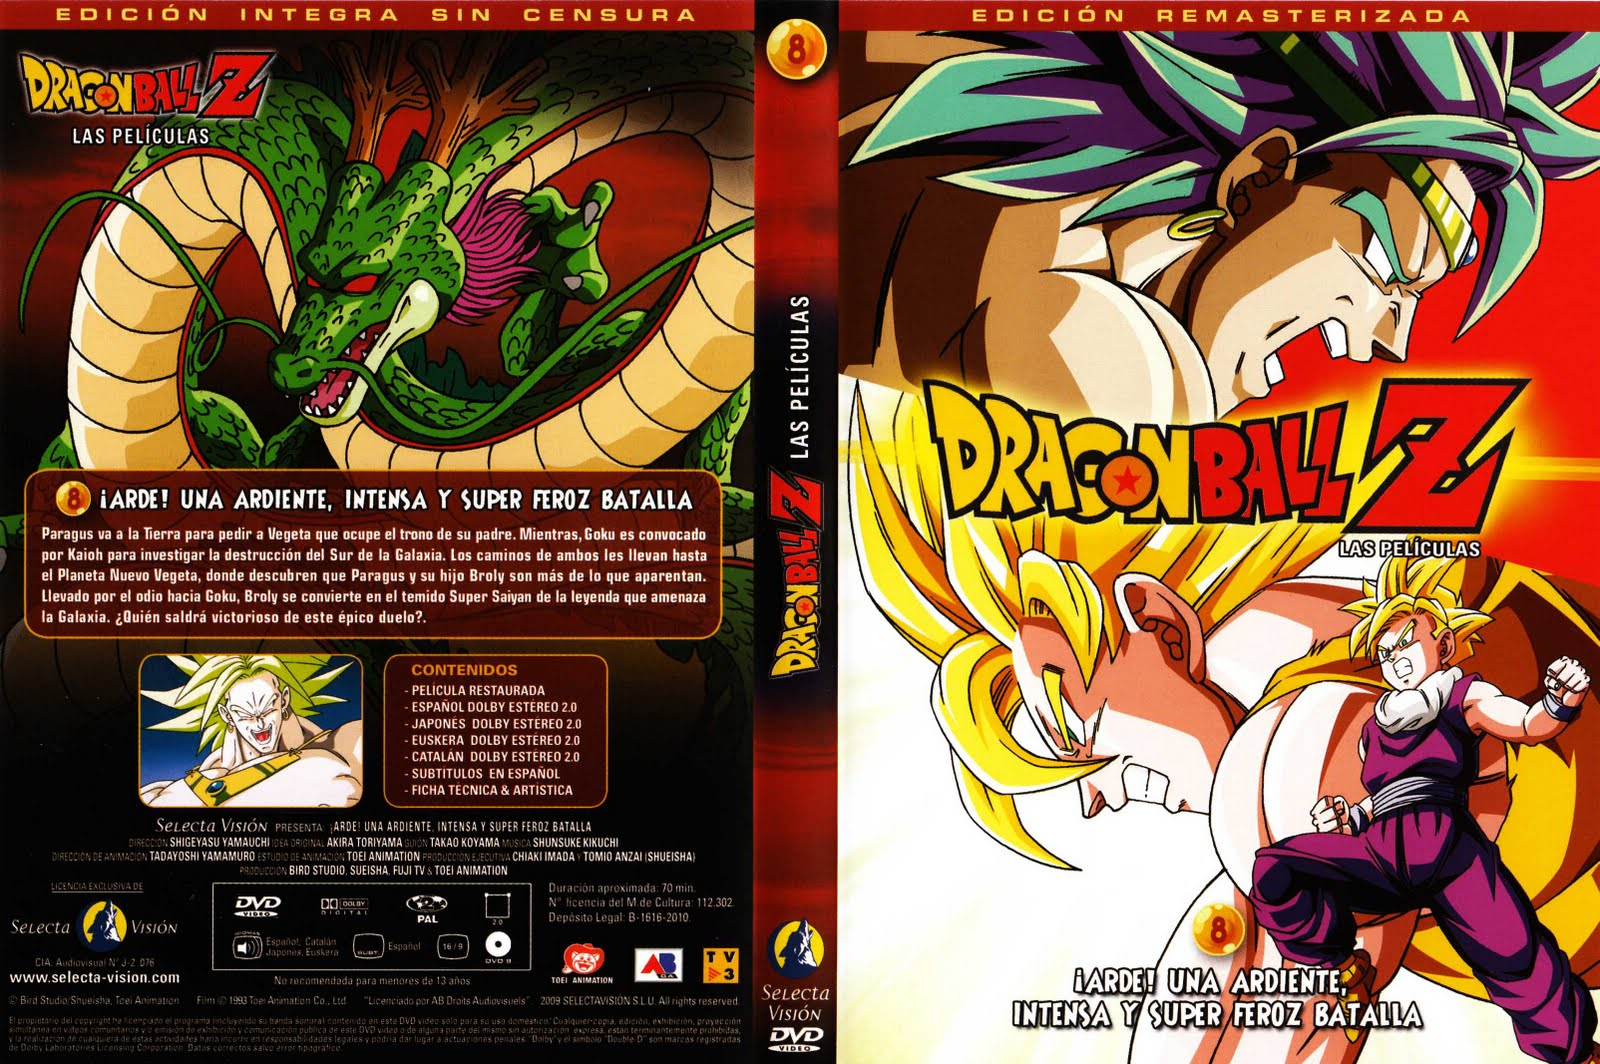 Dragon Ball Z Broly Estalla_el_duelo